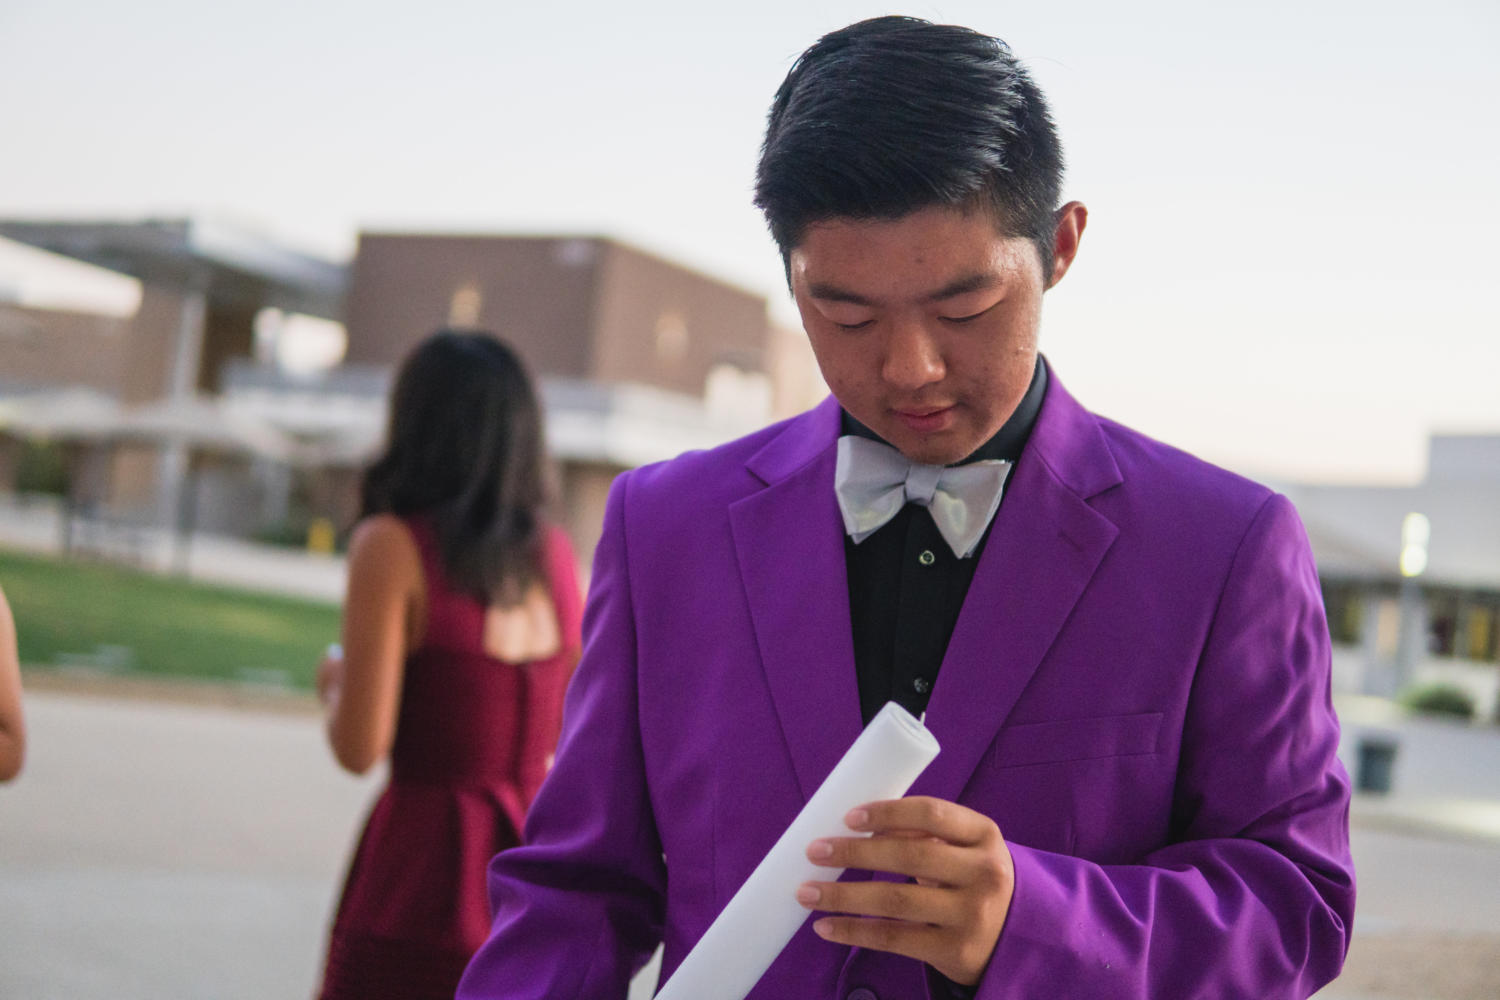 Hercules house president Anthony Lu checks the foam glow stick lights before the Forthcoming dance.